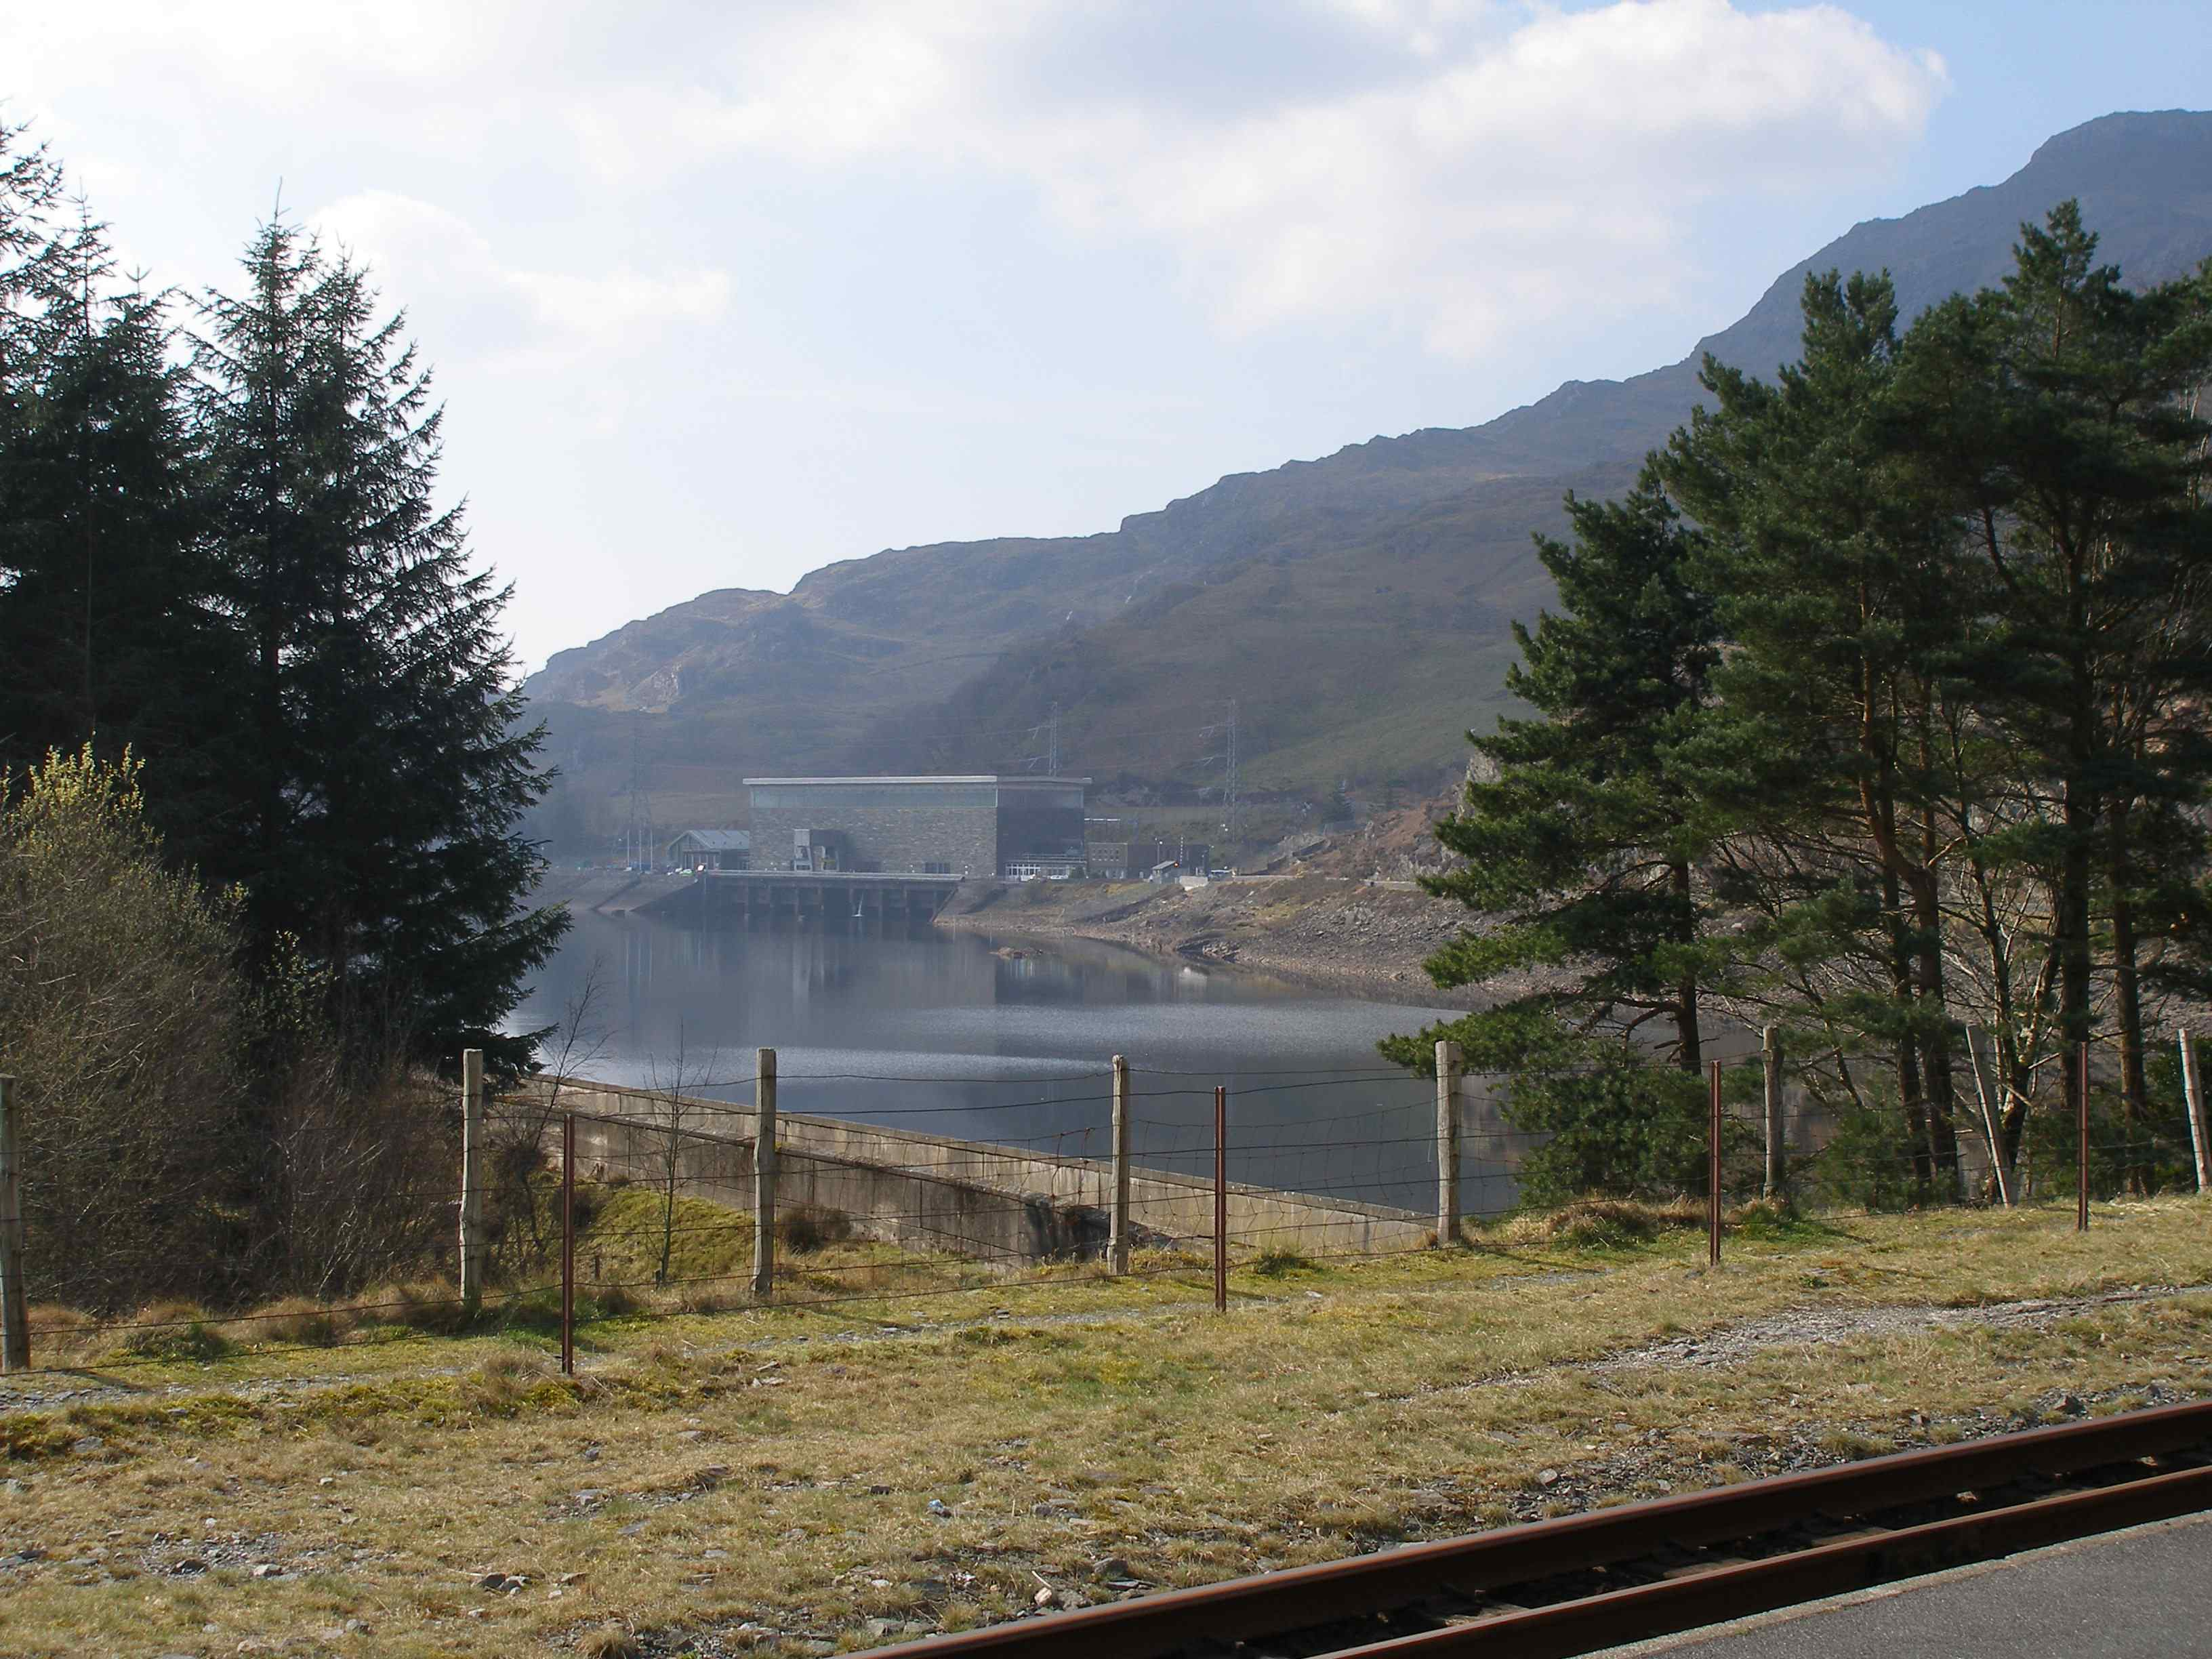 The pumped-hydro electric power station from Tan-y-Grisiau station. The line used to run along the road leading to the power station and then through the actual site - the old cutting on the other side is still visible. The new line now climbs from the station before emerging just below the roof line of the Power Station, level with the upper windows. The ballast bed can just be made out. Commissioned in 1963, Ffestiniog Power Station was the UK's first major pumped storage power facility. Although of an older generation to those at Dinorwig, Ffestiniog's four generating units are still capable of achieving a combined output of 360MW of electricity - enough to supply the entire power needs of North Wales for several hours. The Generation Cycle begins at Llyn Stwlan - Ffestiniog's upper reservoir. Large screens inside the intake towers are opened to activate the high-pressure downflow.